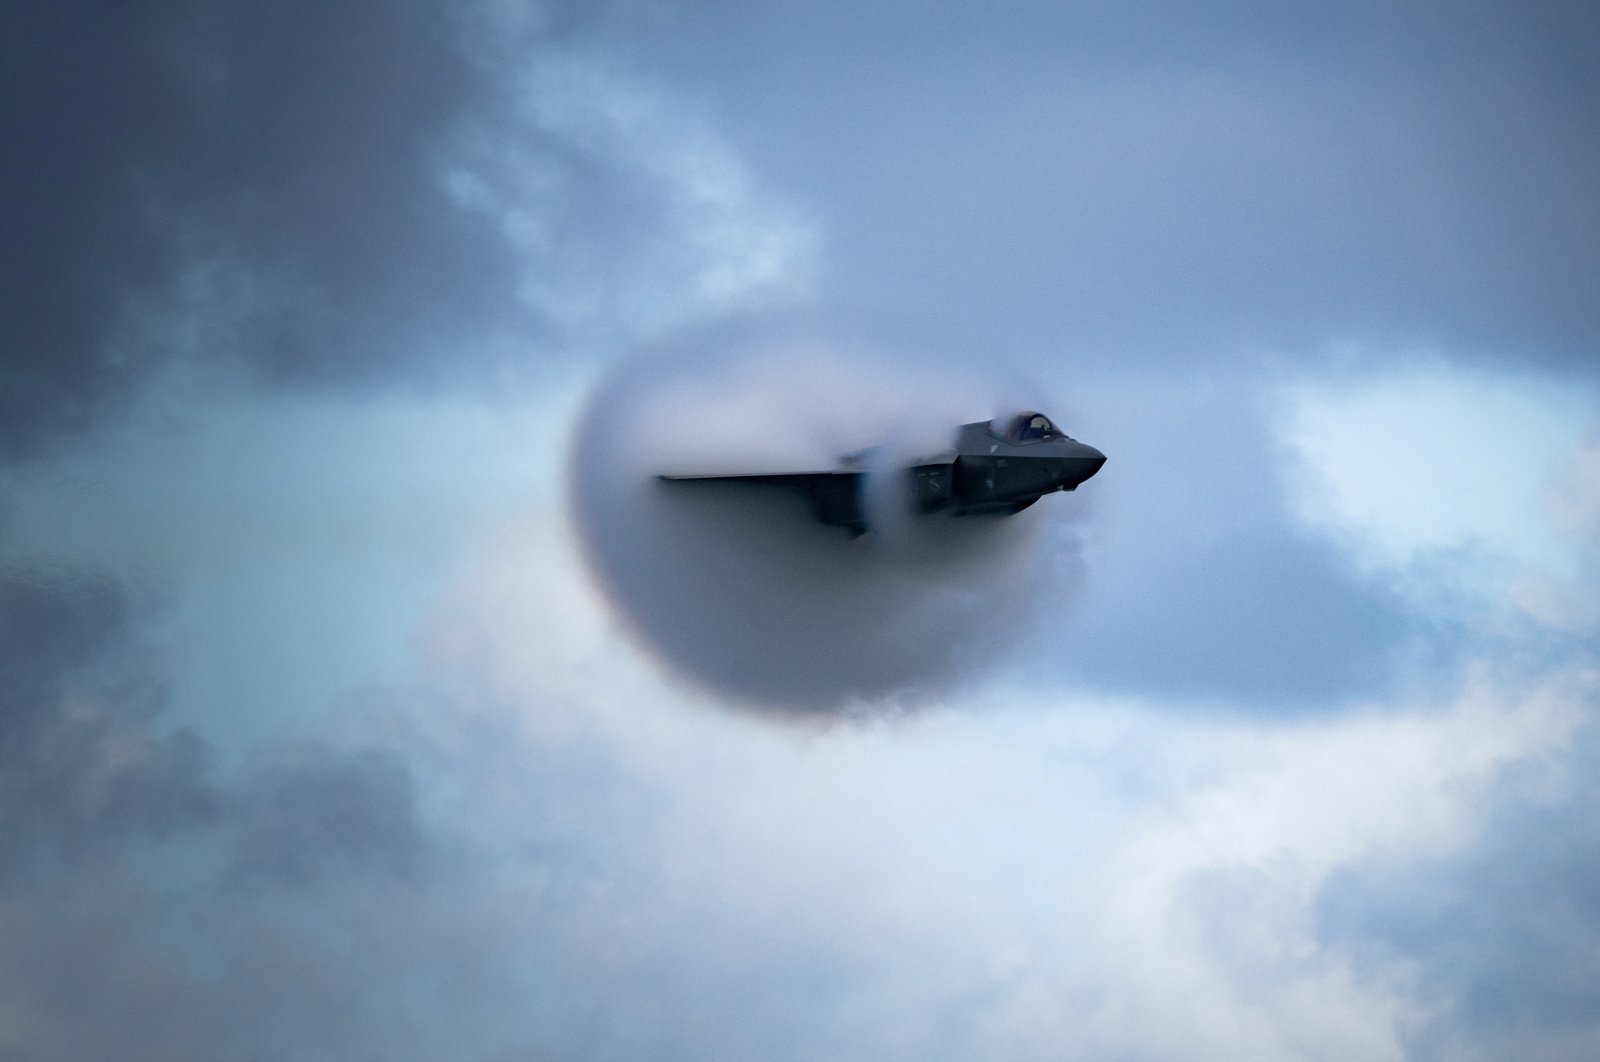 """F-35 Lightning II pilot, U.S. Air Force Captain Kristin """"BEO"""" Wolfe, performs the """"high-speed pass"""" maneuver at approximately .95 mach, which is just below the speed of sound, at the 2020 Fort Lauderdale Air Show in Fort Lauderdale, Florida, U.S. November 22, 2020. (U.S. Air Force via Reuters)"""